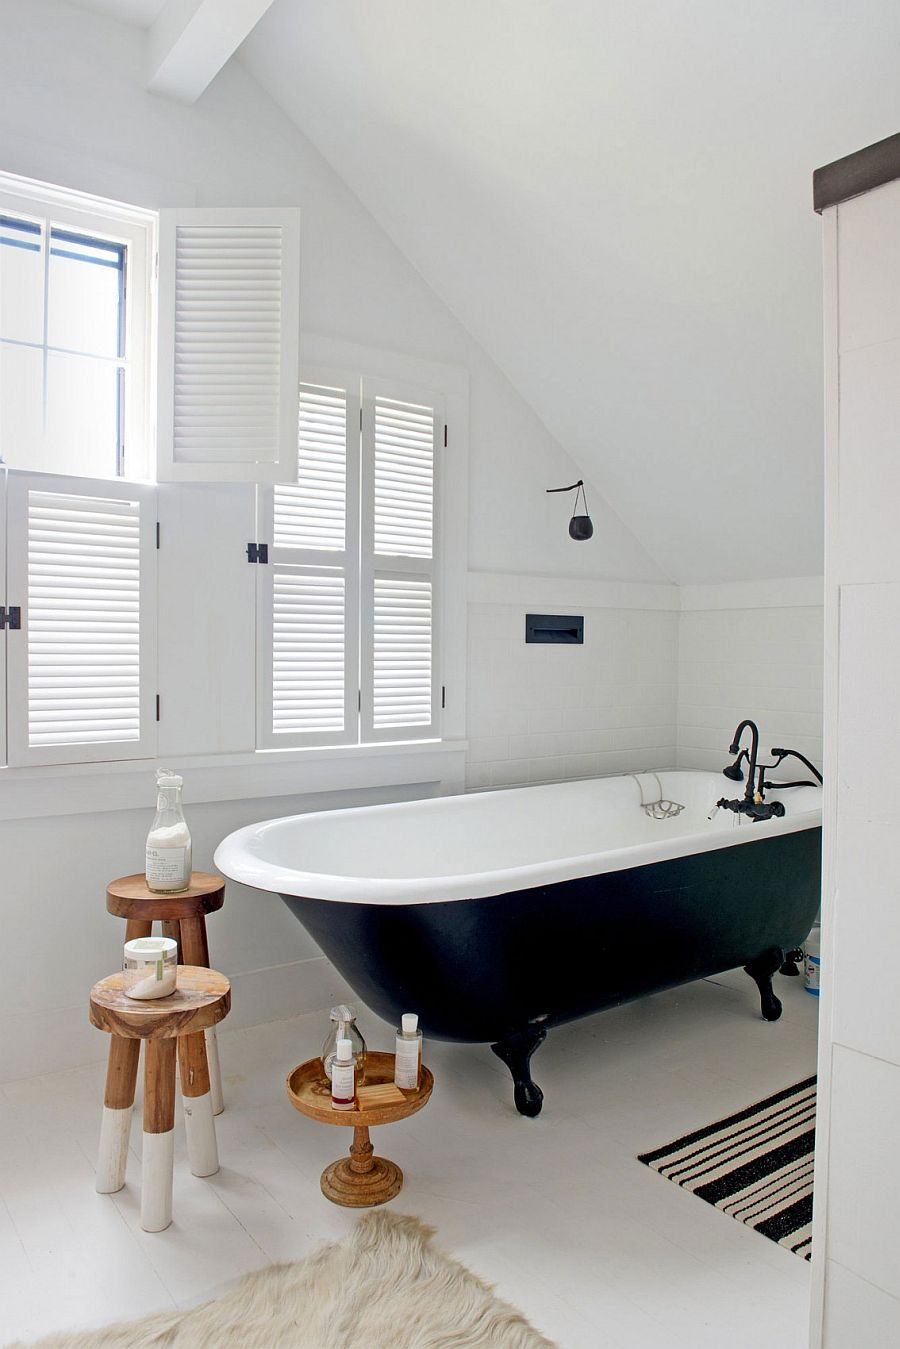 Claw-foot bathtub in the small bathroom in black and white